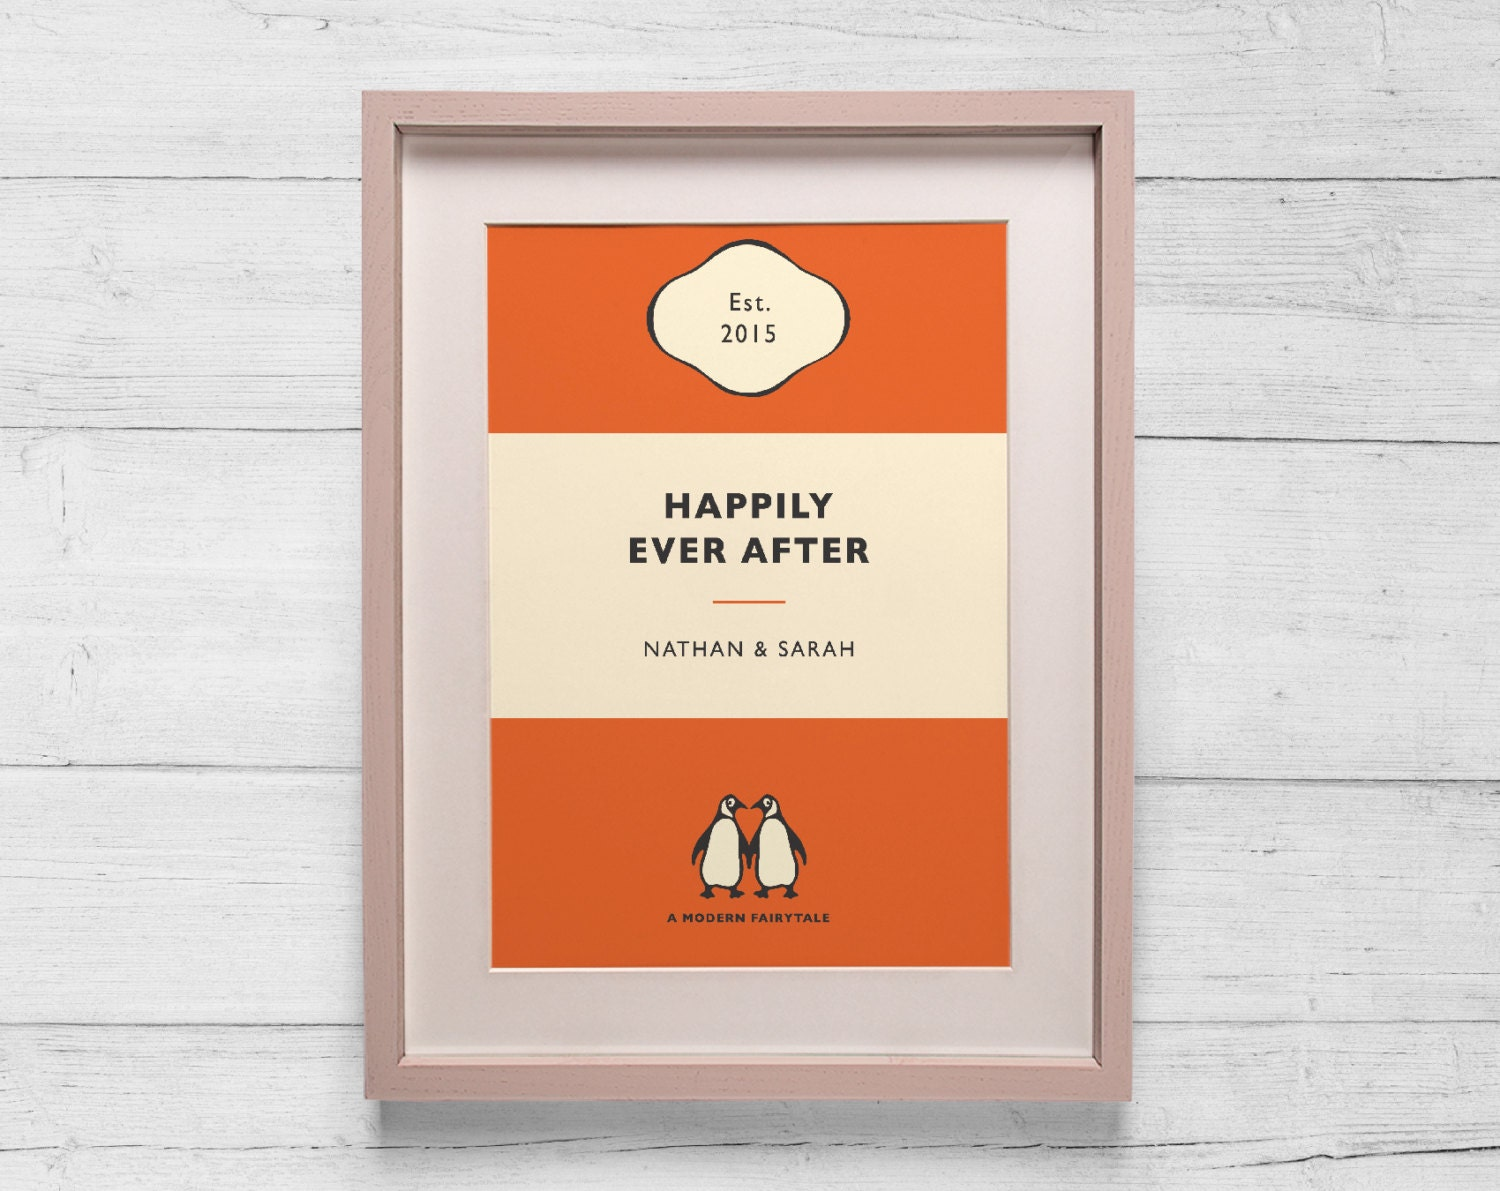 Penguin Book Cover Personalised : Personalised penguin book cover print wedding by bokaprint